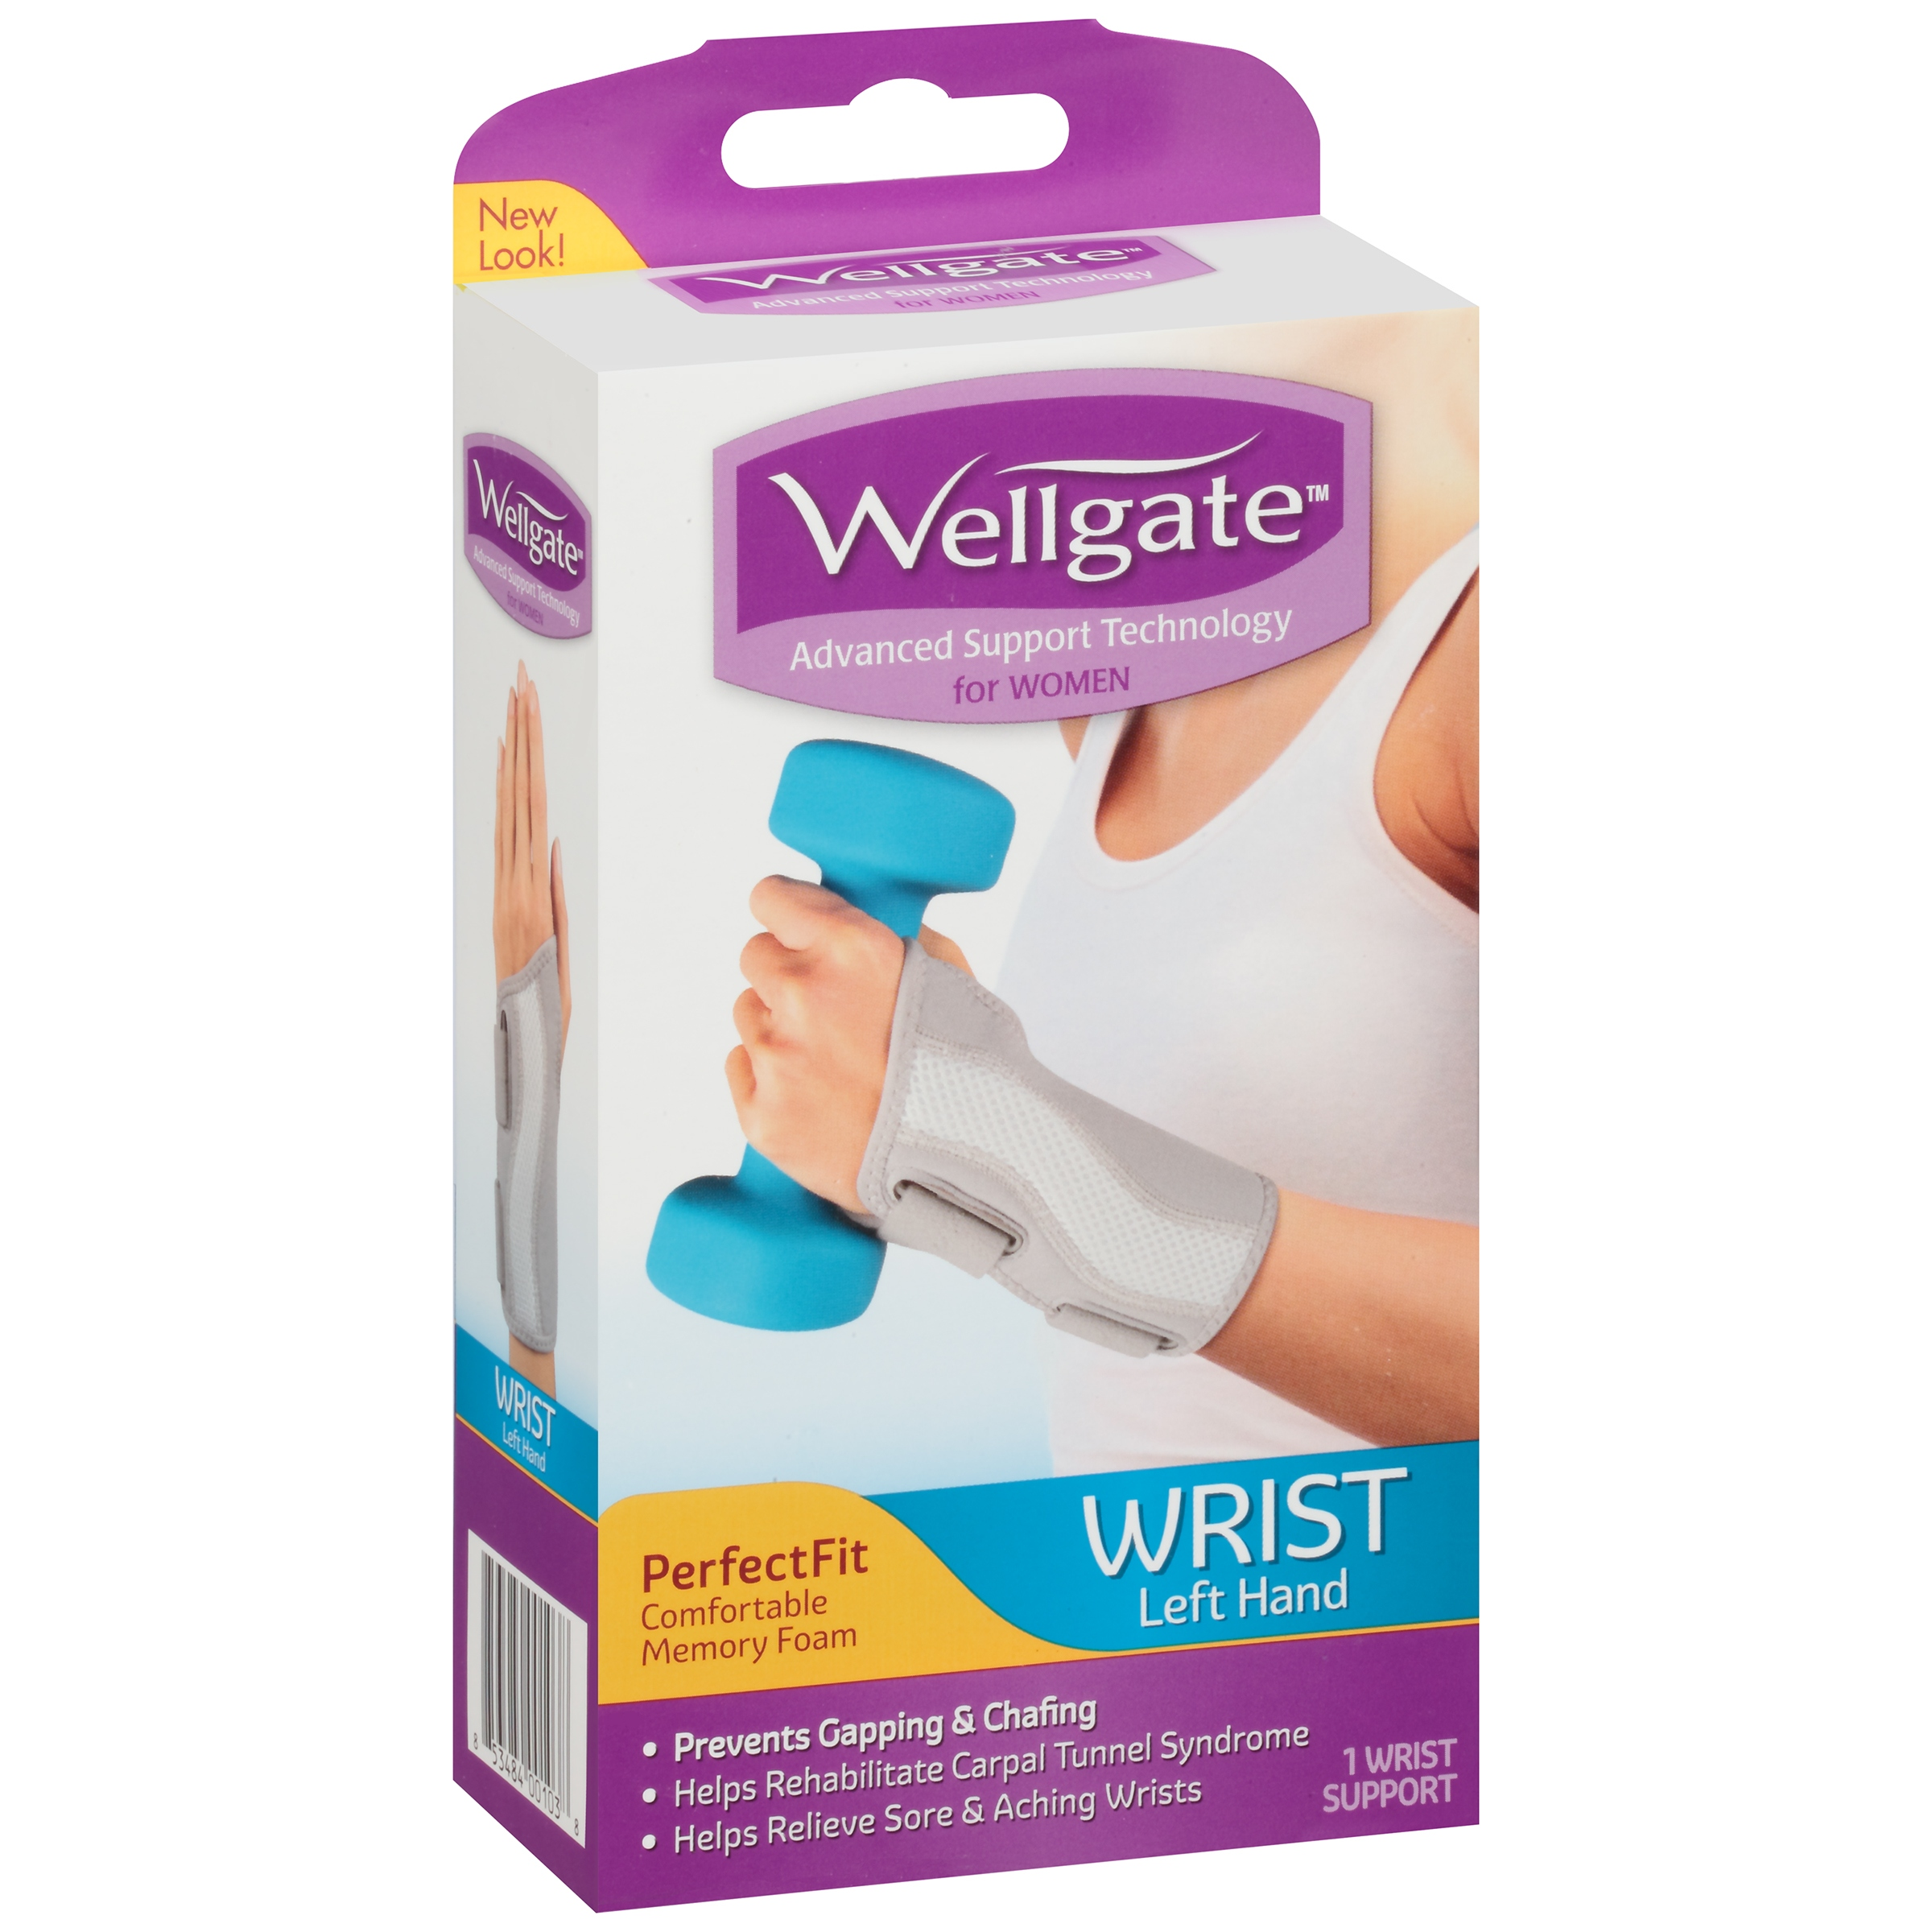 Wellgate™ PerfectFit Wrist Support for Women Left Hand 1 ct. Box